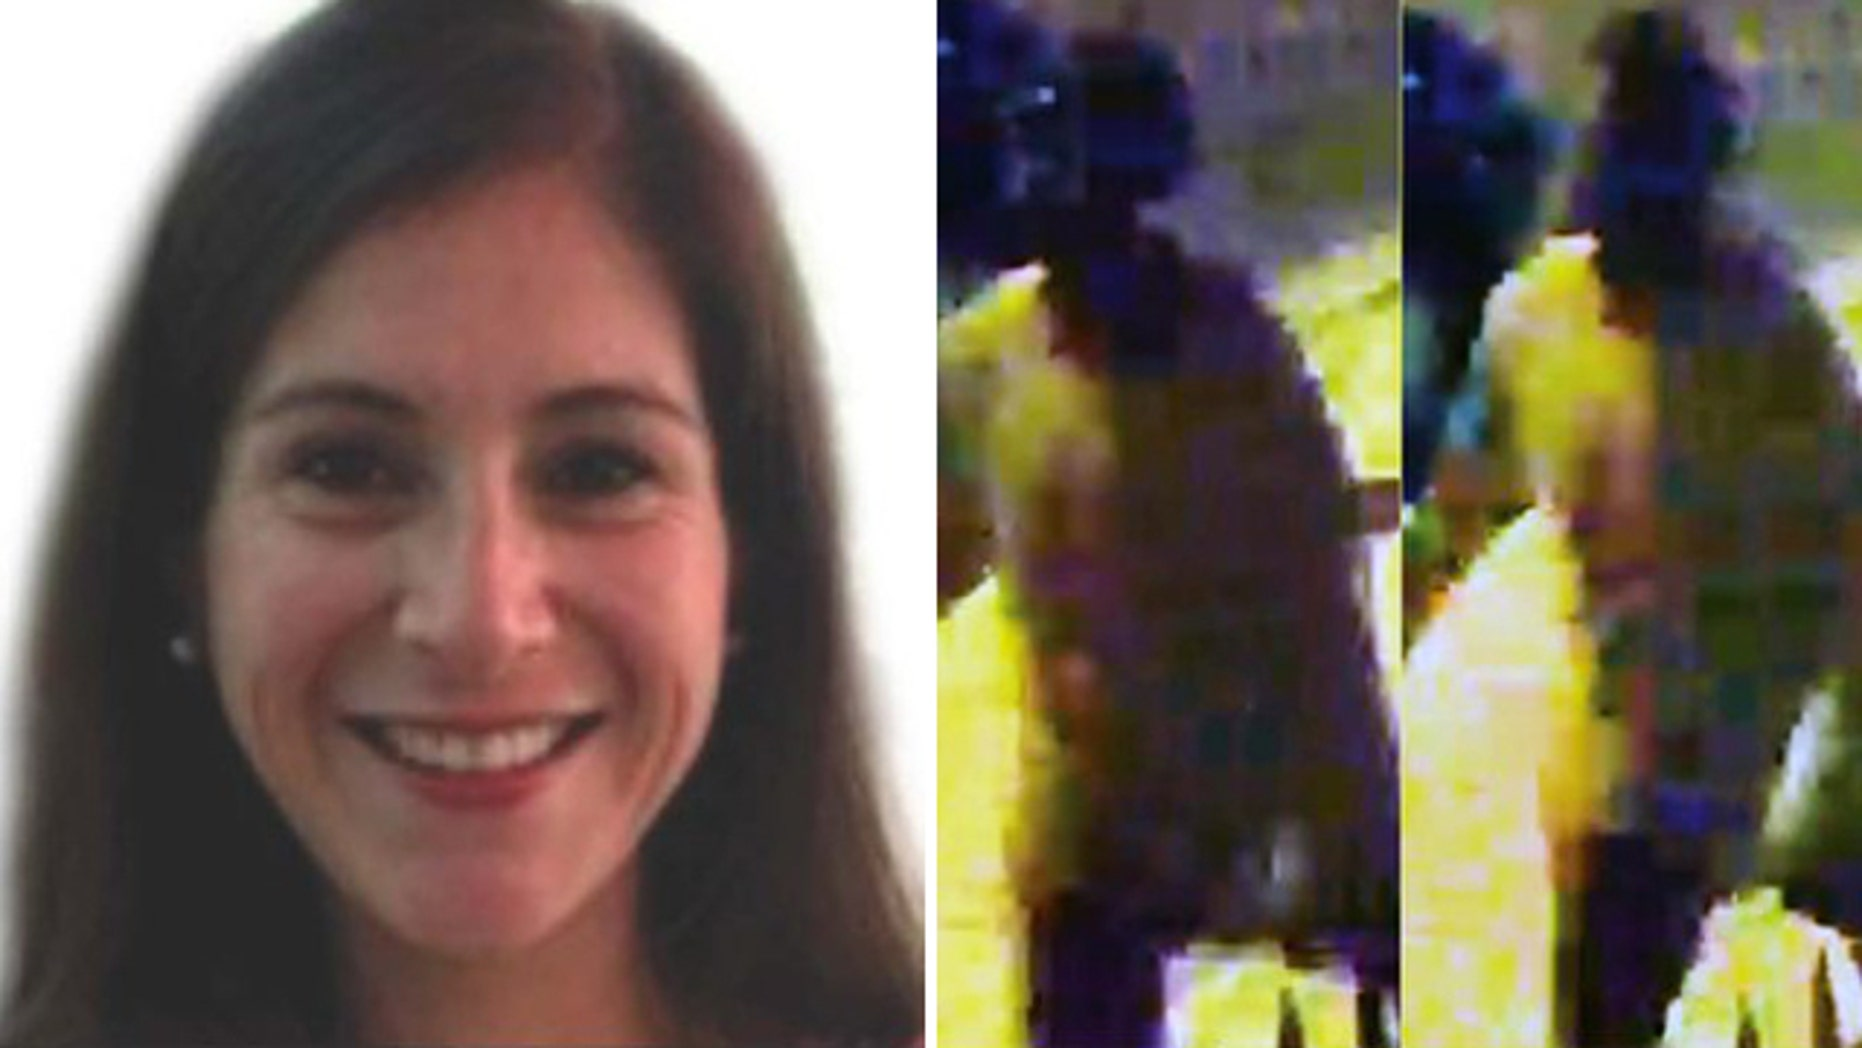 Wendy K. Martinez, 35, was stabbed to death in Logan Circle Tuesday night. Police are looking for the suspect, right.